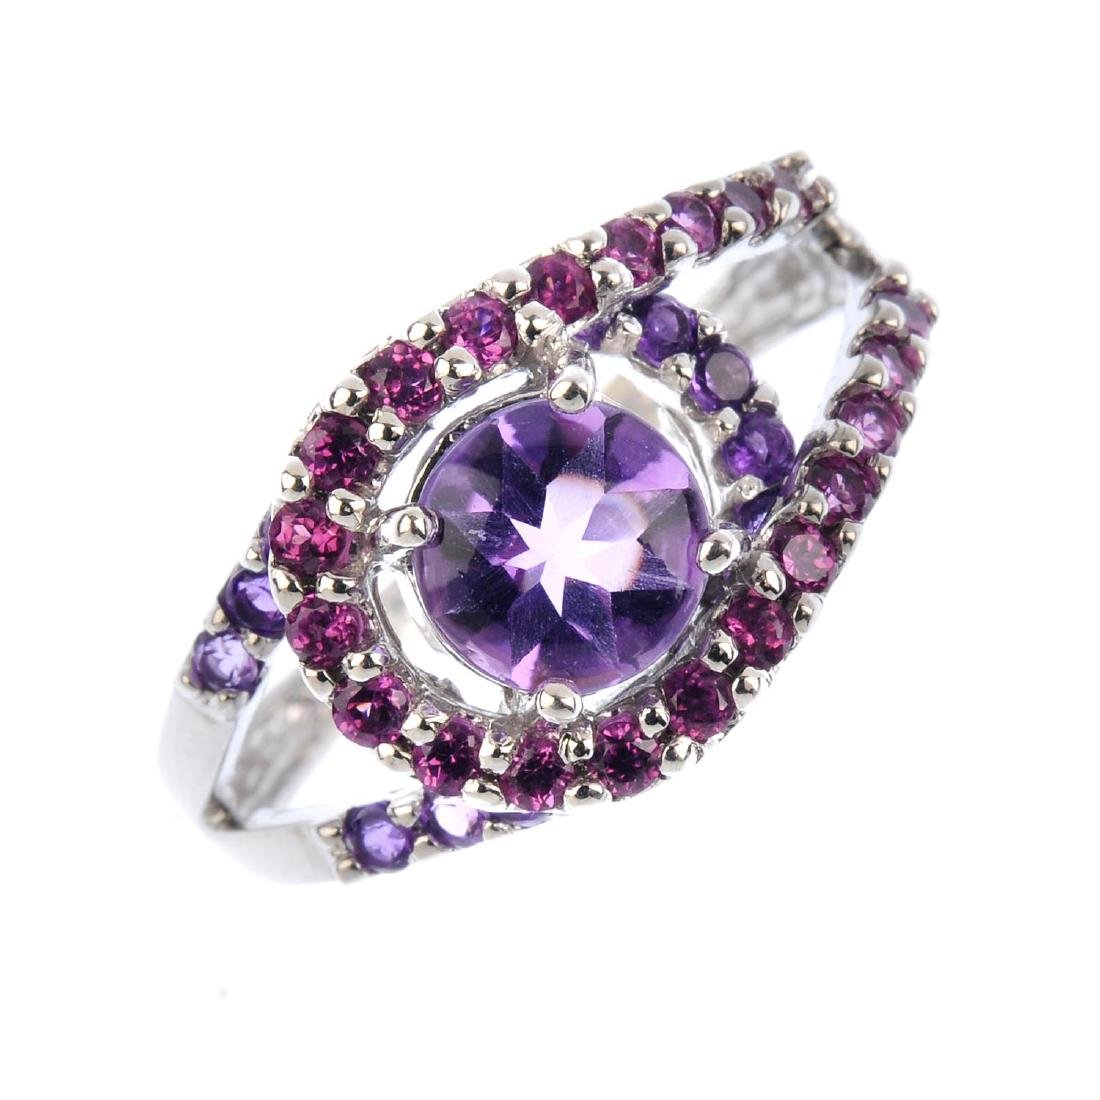 An amethyst dress ring. The fancy-cut circular-shape